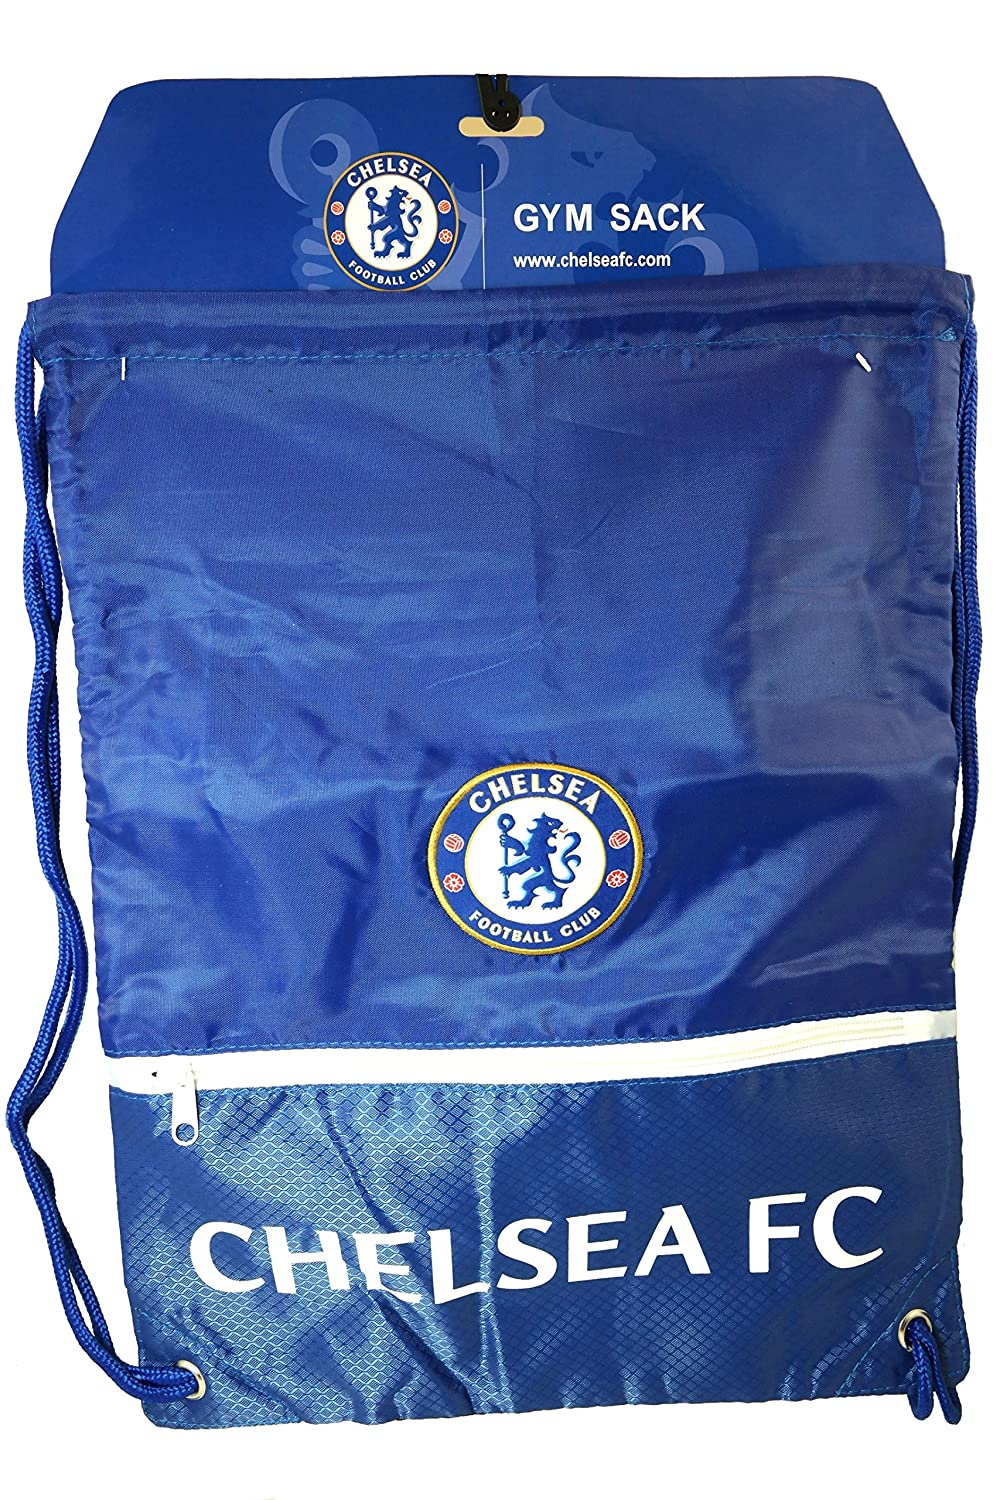 FC Chelsea Authentic Official Licensed Soccer Drawstring Cinch Sackバッグ01 B0109LV620